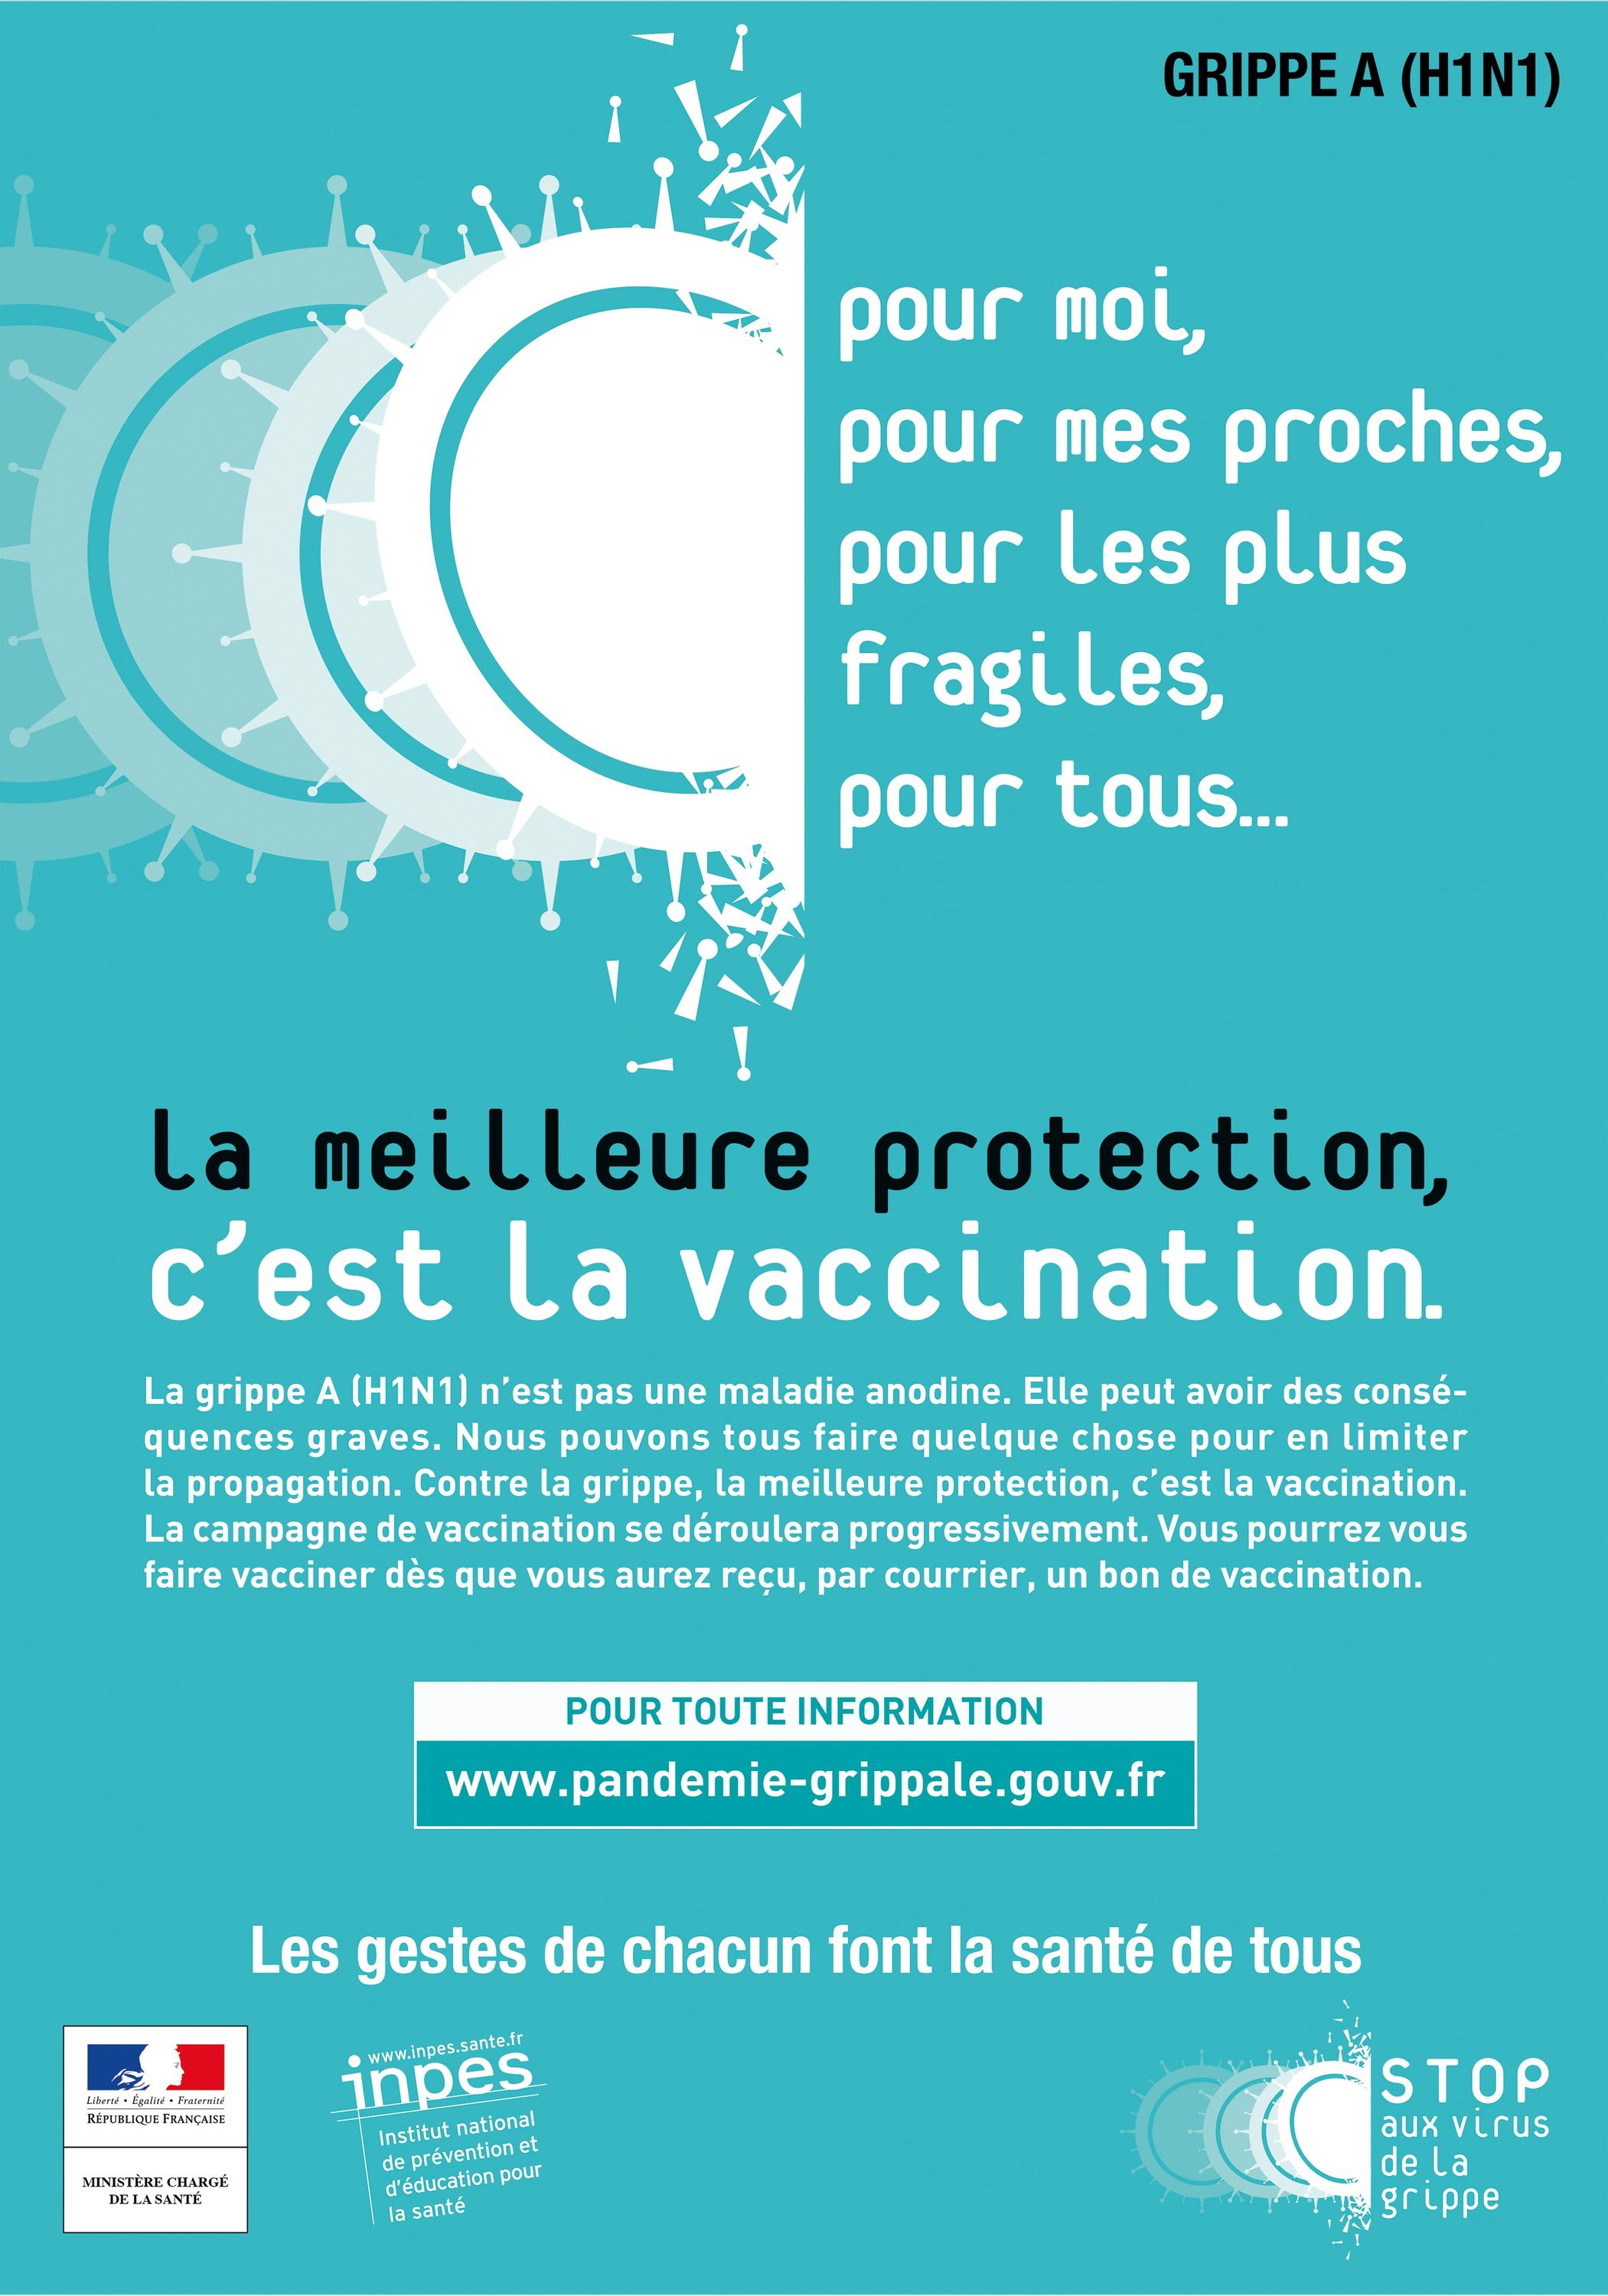 <stamp theme='svt-green1'>Doc. 2</stamp> Une campagne de vaccination contre la grippe, France, 2009.